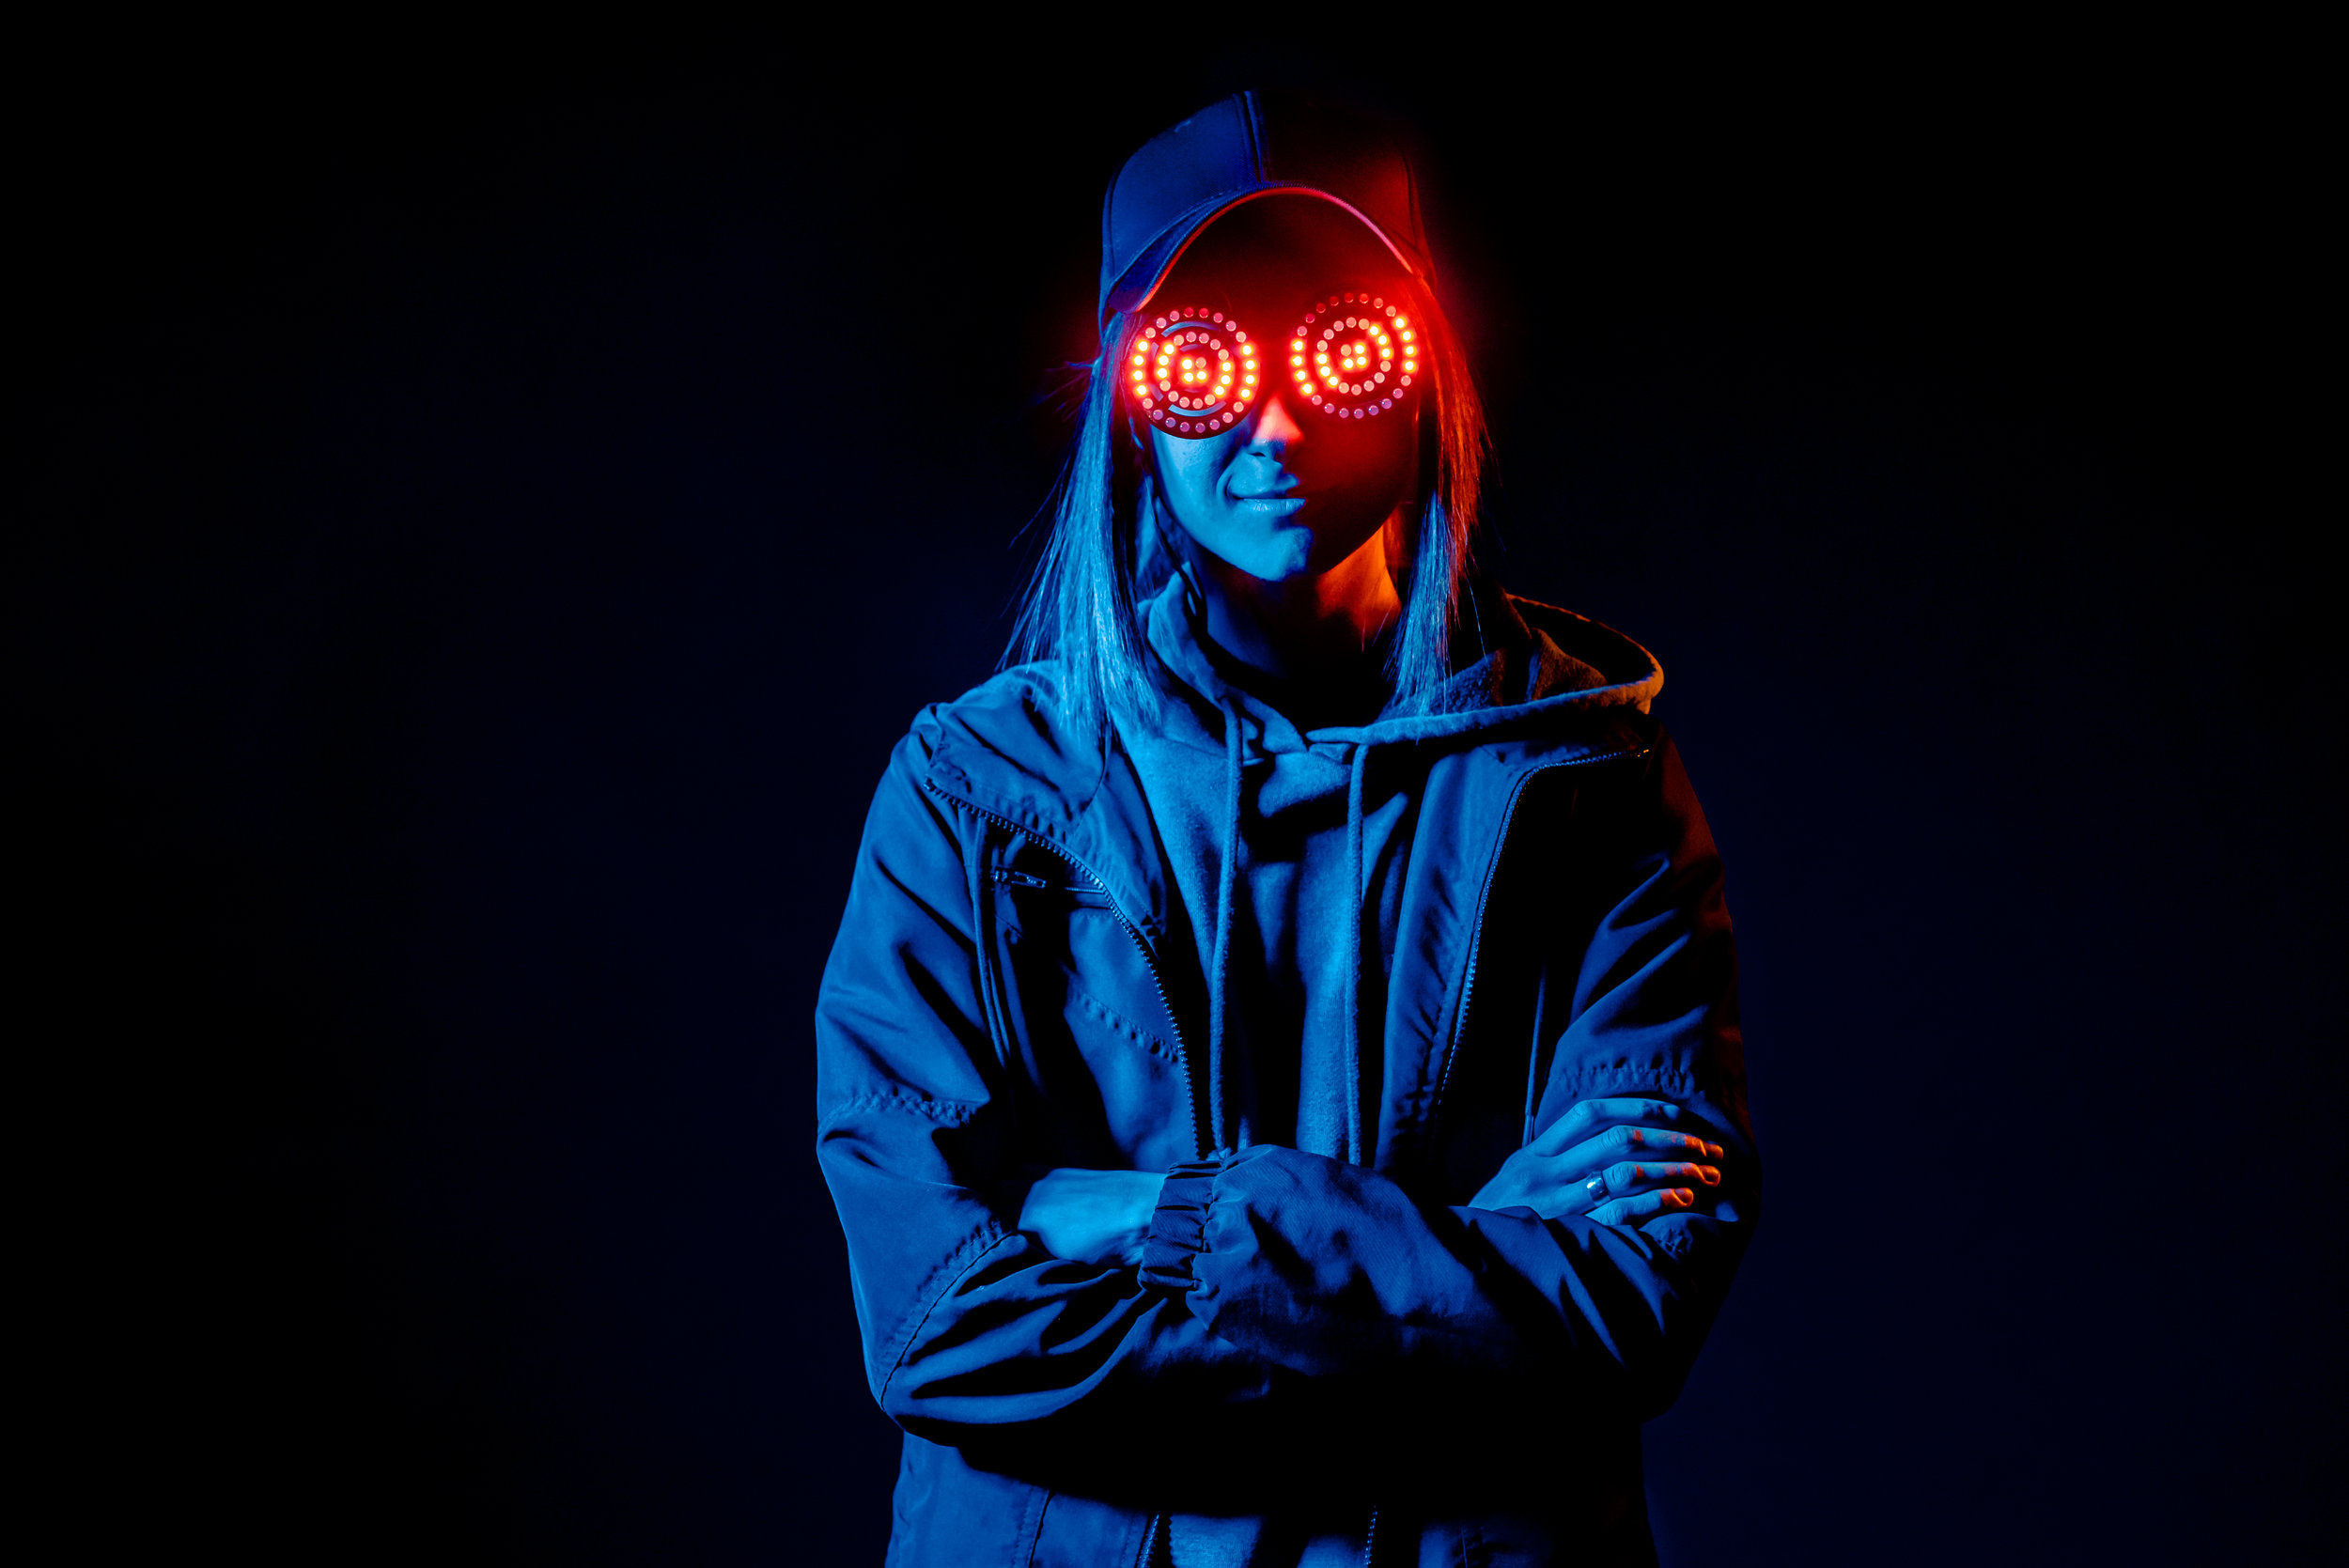 REZZ -BEYOND THE SENSES TOUR - Tickets available now through the links below.